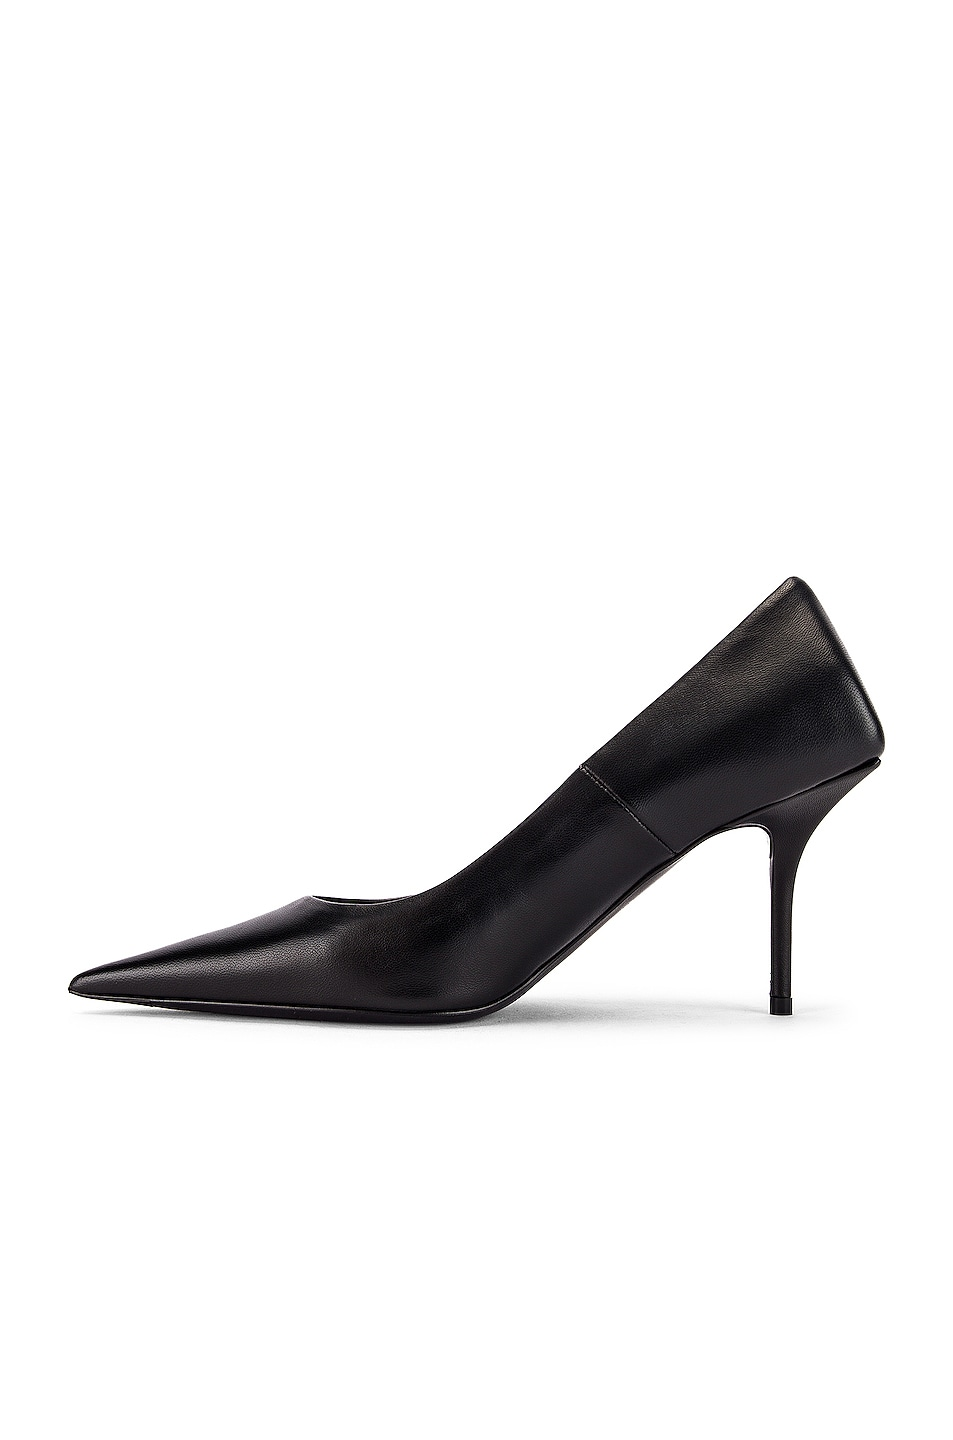 Image 5 of Balenciaga Square Knife Pumps in Black